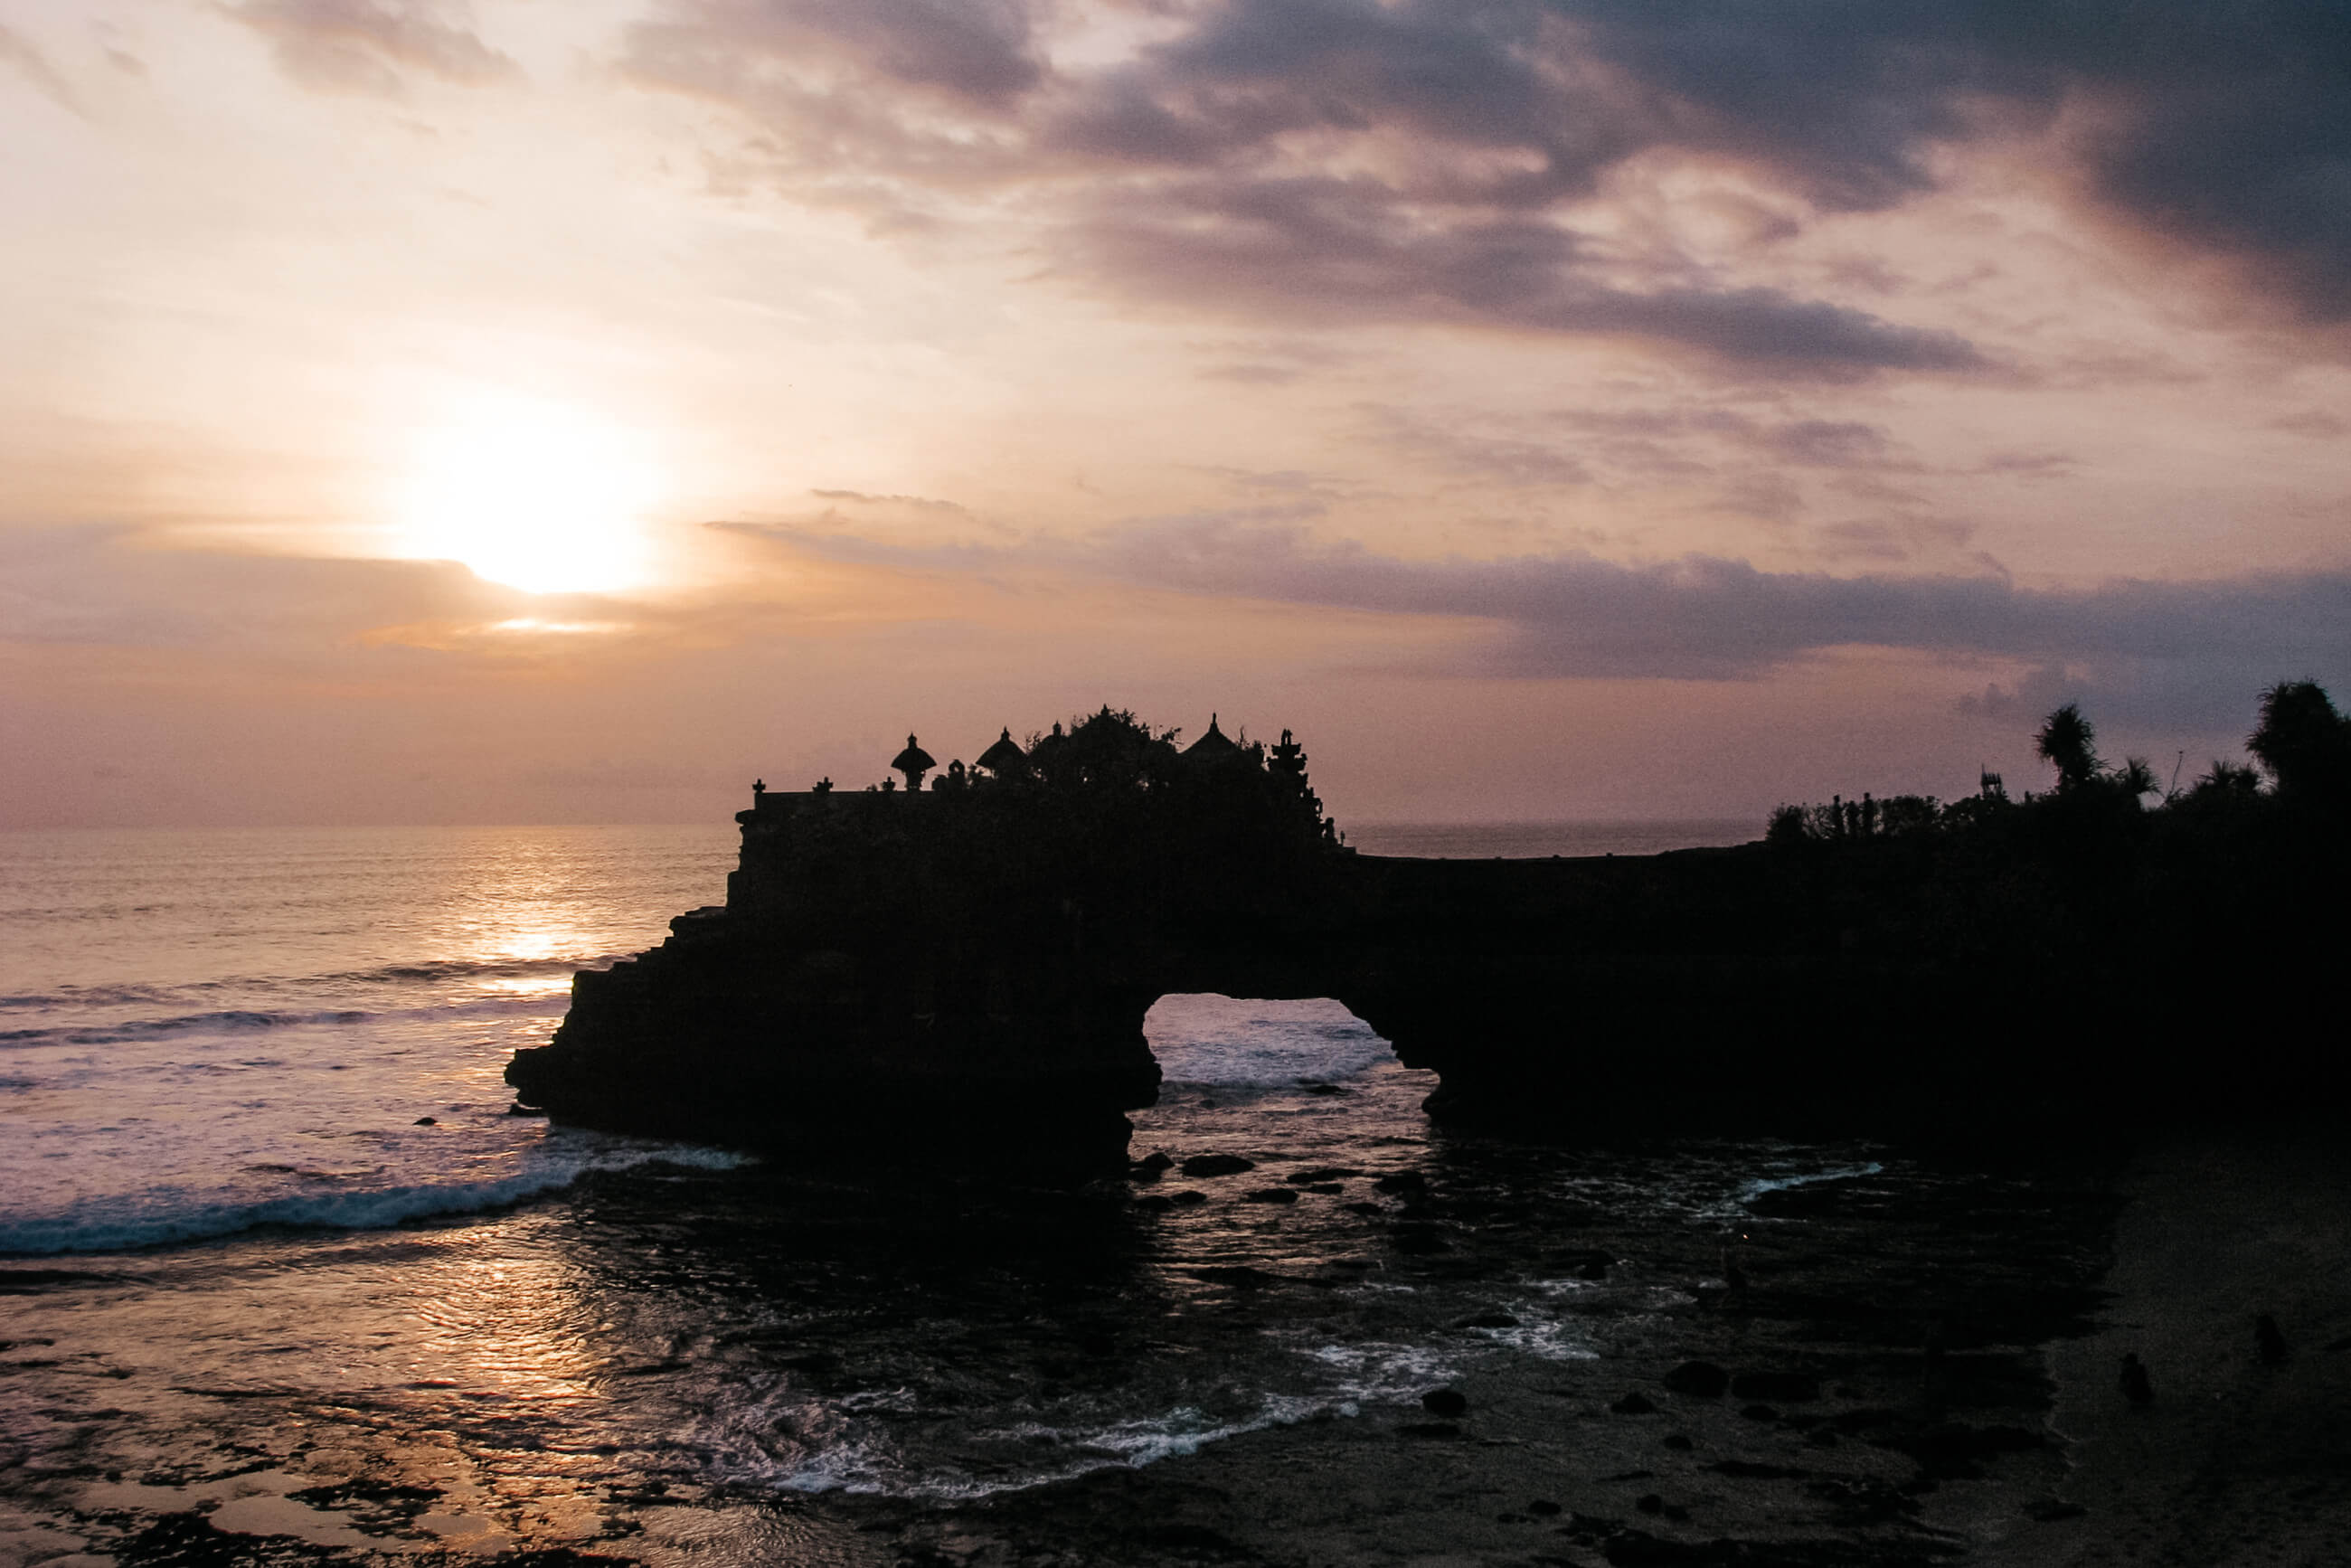 https://bubo.sk/uploads/galleries/7329/jozefharvanek_indonezia_bali_316-chram-tanah-lot-27.jpg